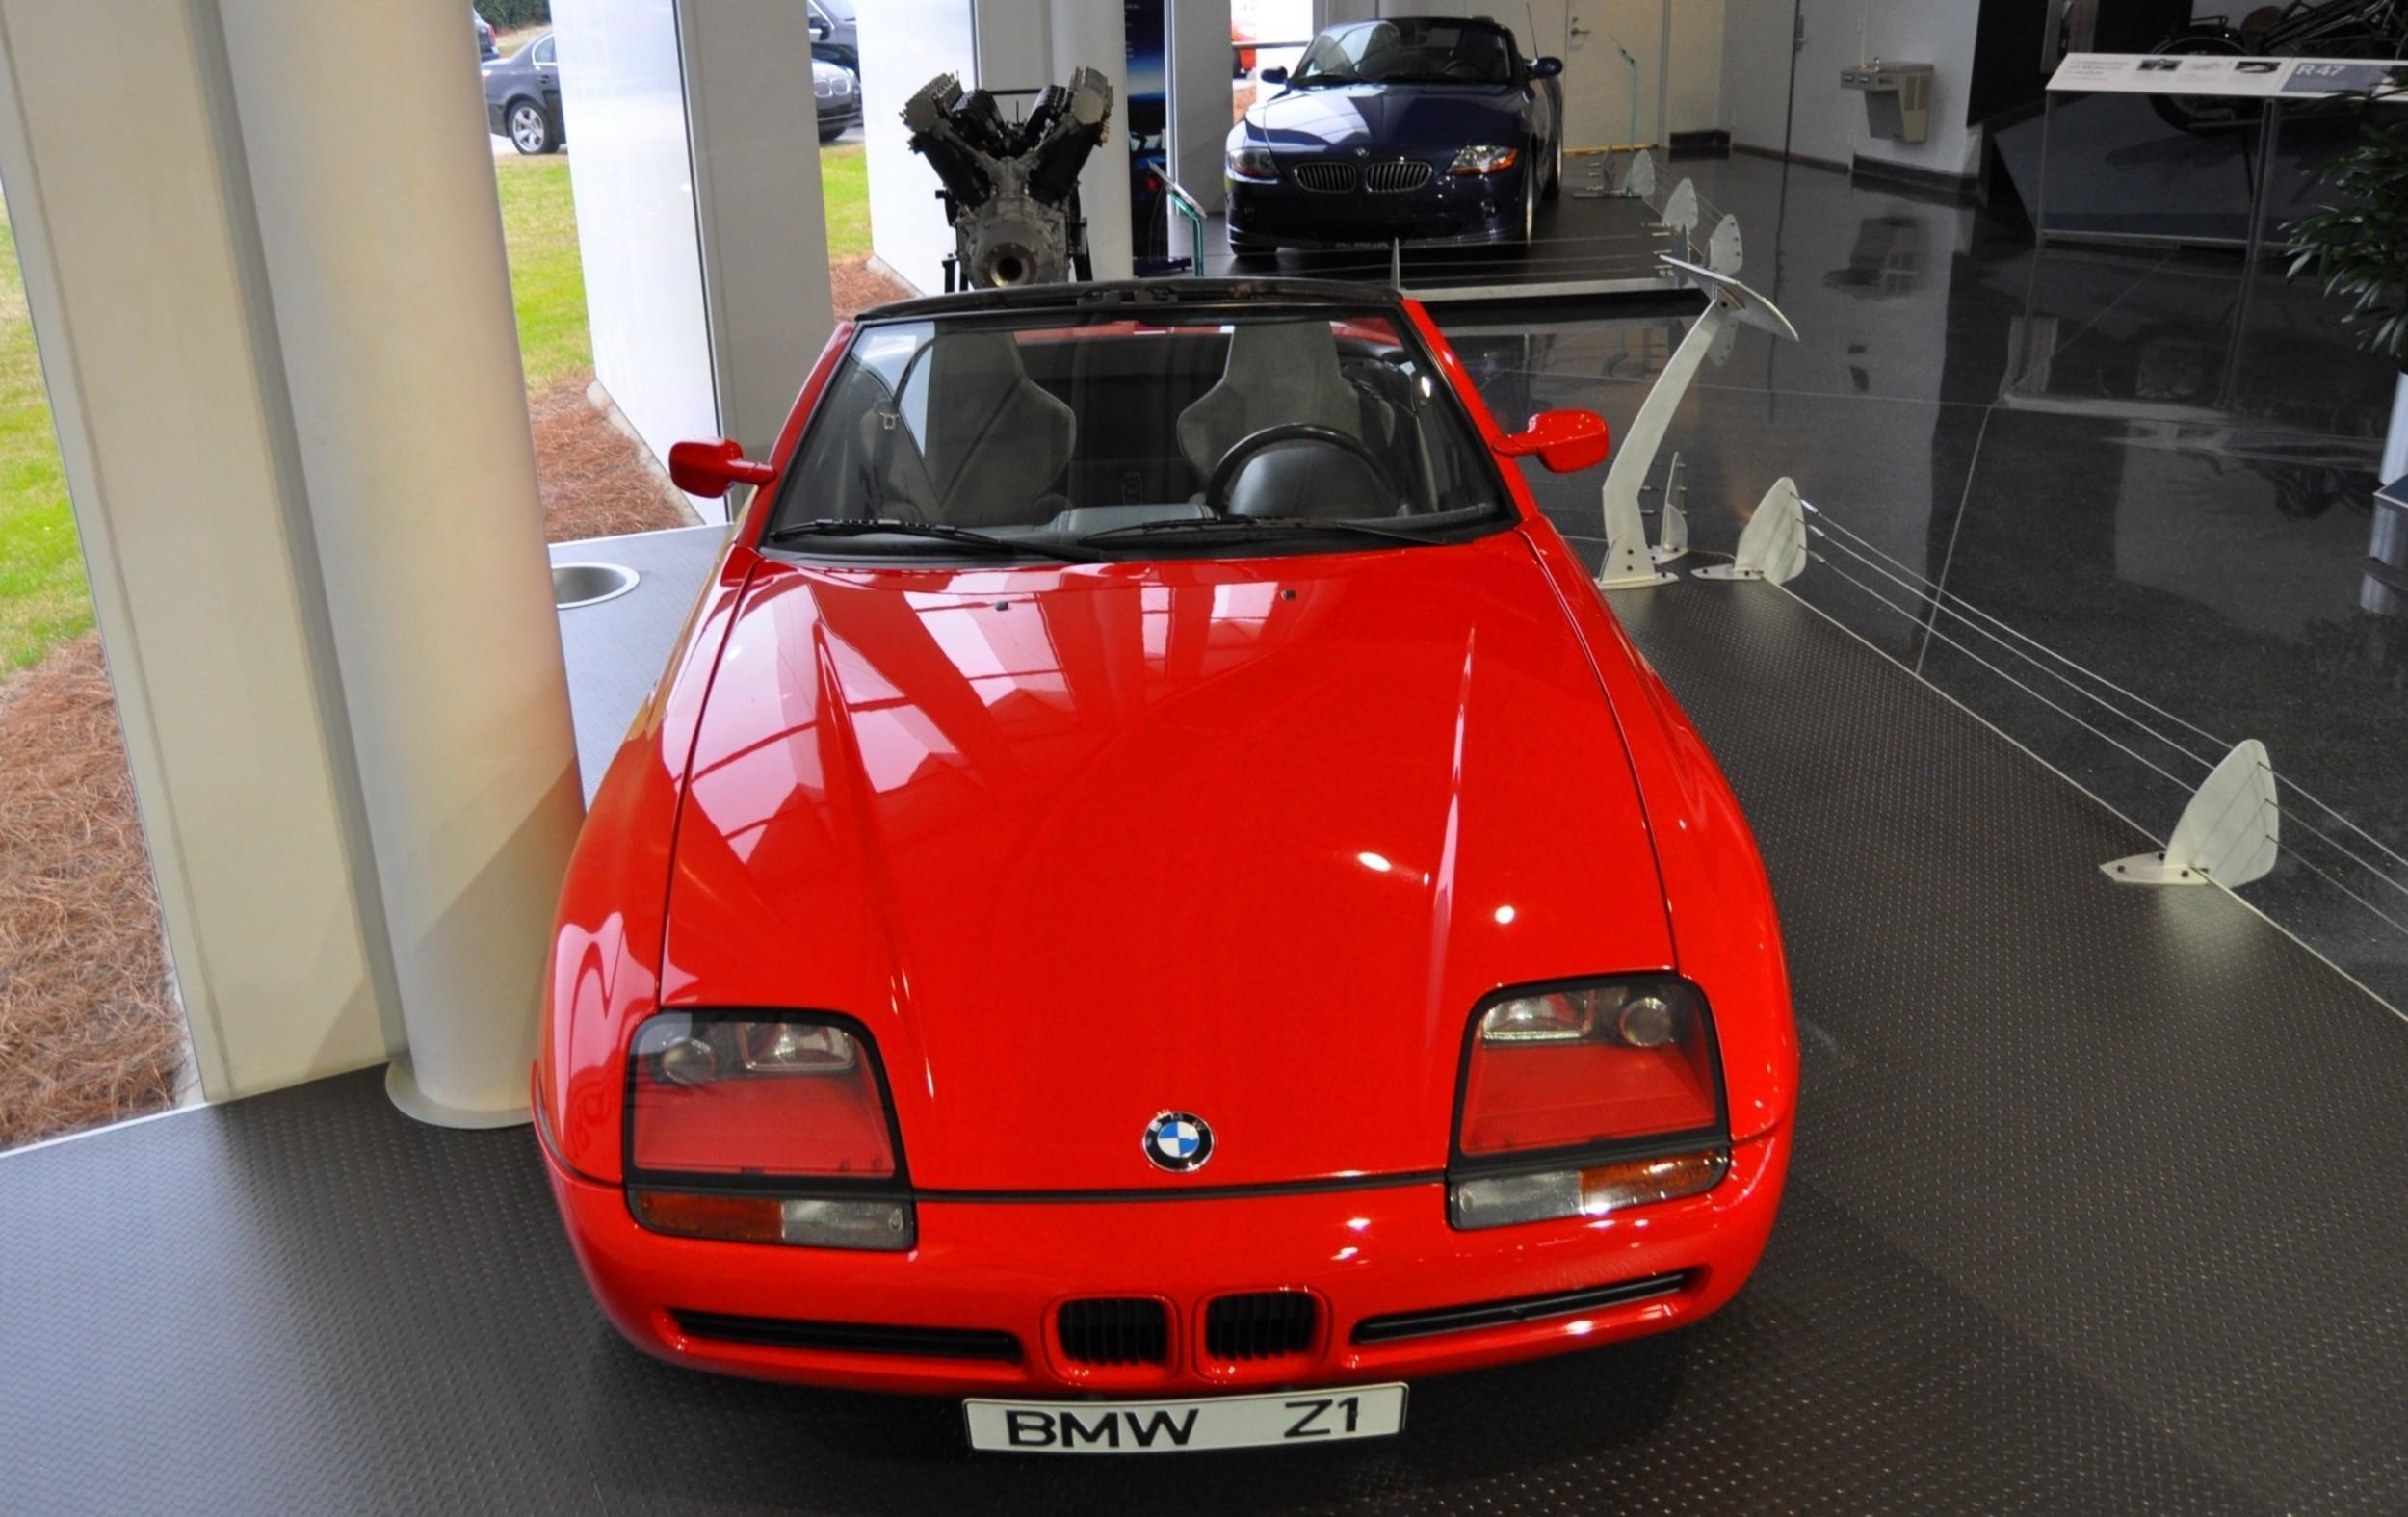 Car-Museums-Showcase-1989-BMW-Z1-at-Zentrum-in-Spartanburg-SC-High-Demand-+-High-Price-Led-Directly-to-US-Built-Z3-15 Stunning Bmw Z1 Hardtop for Sale Cars Trend